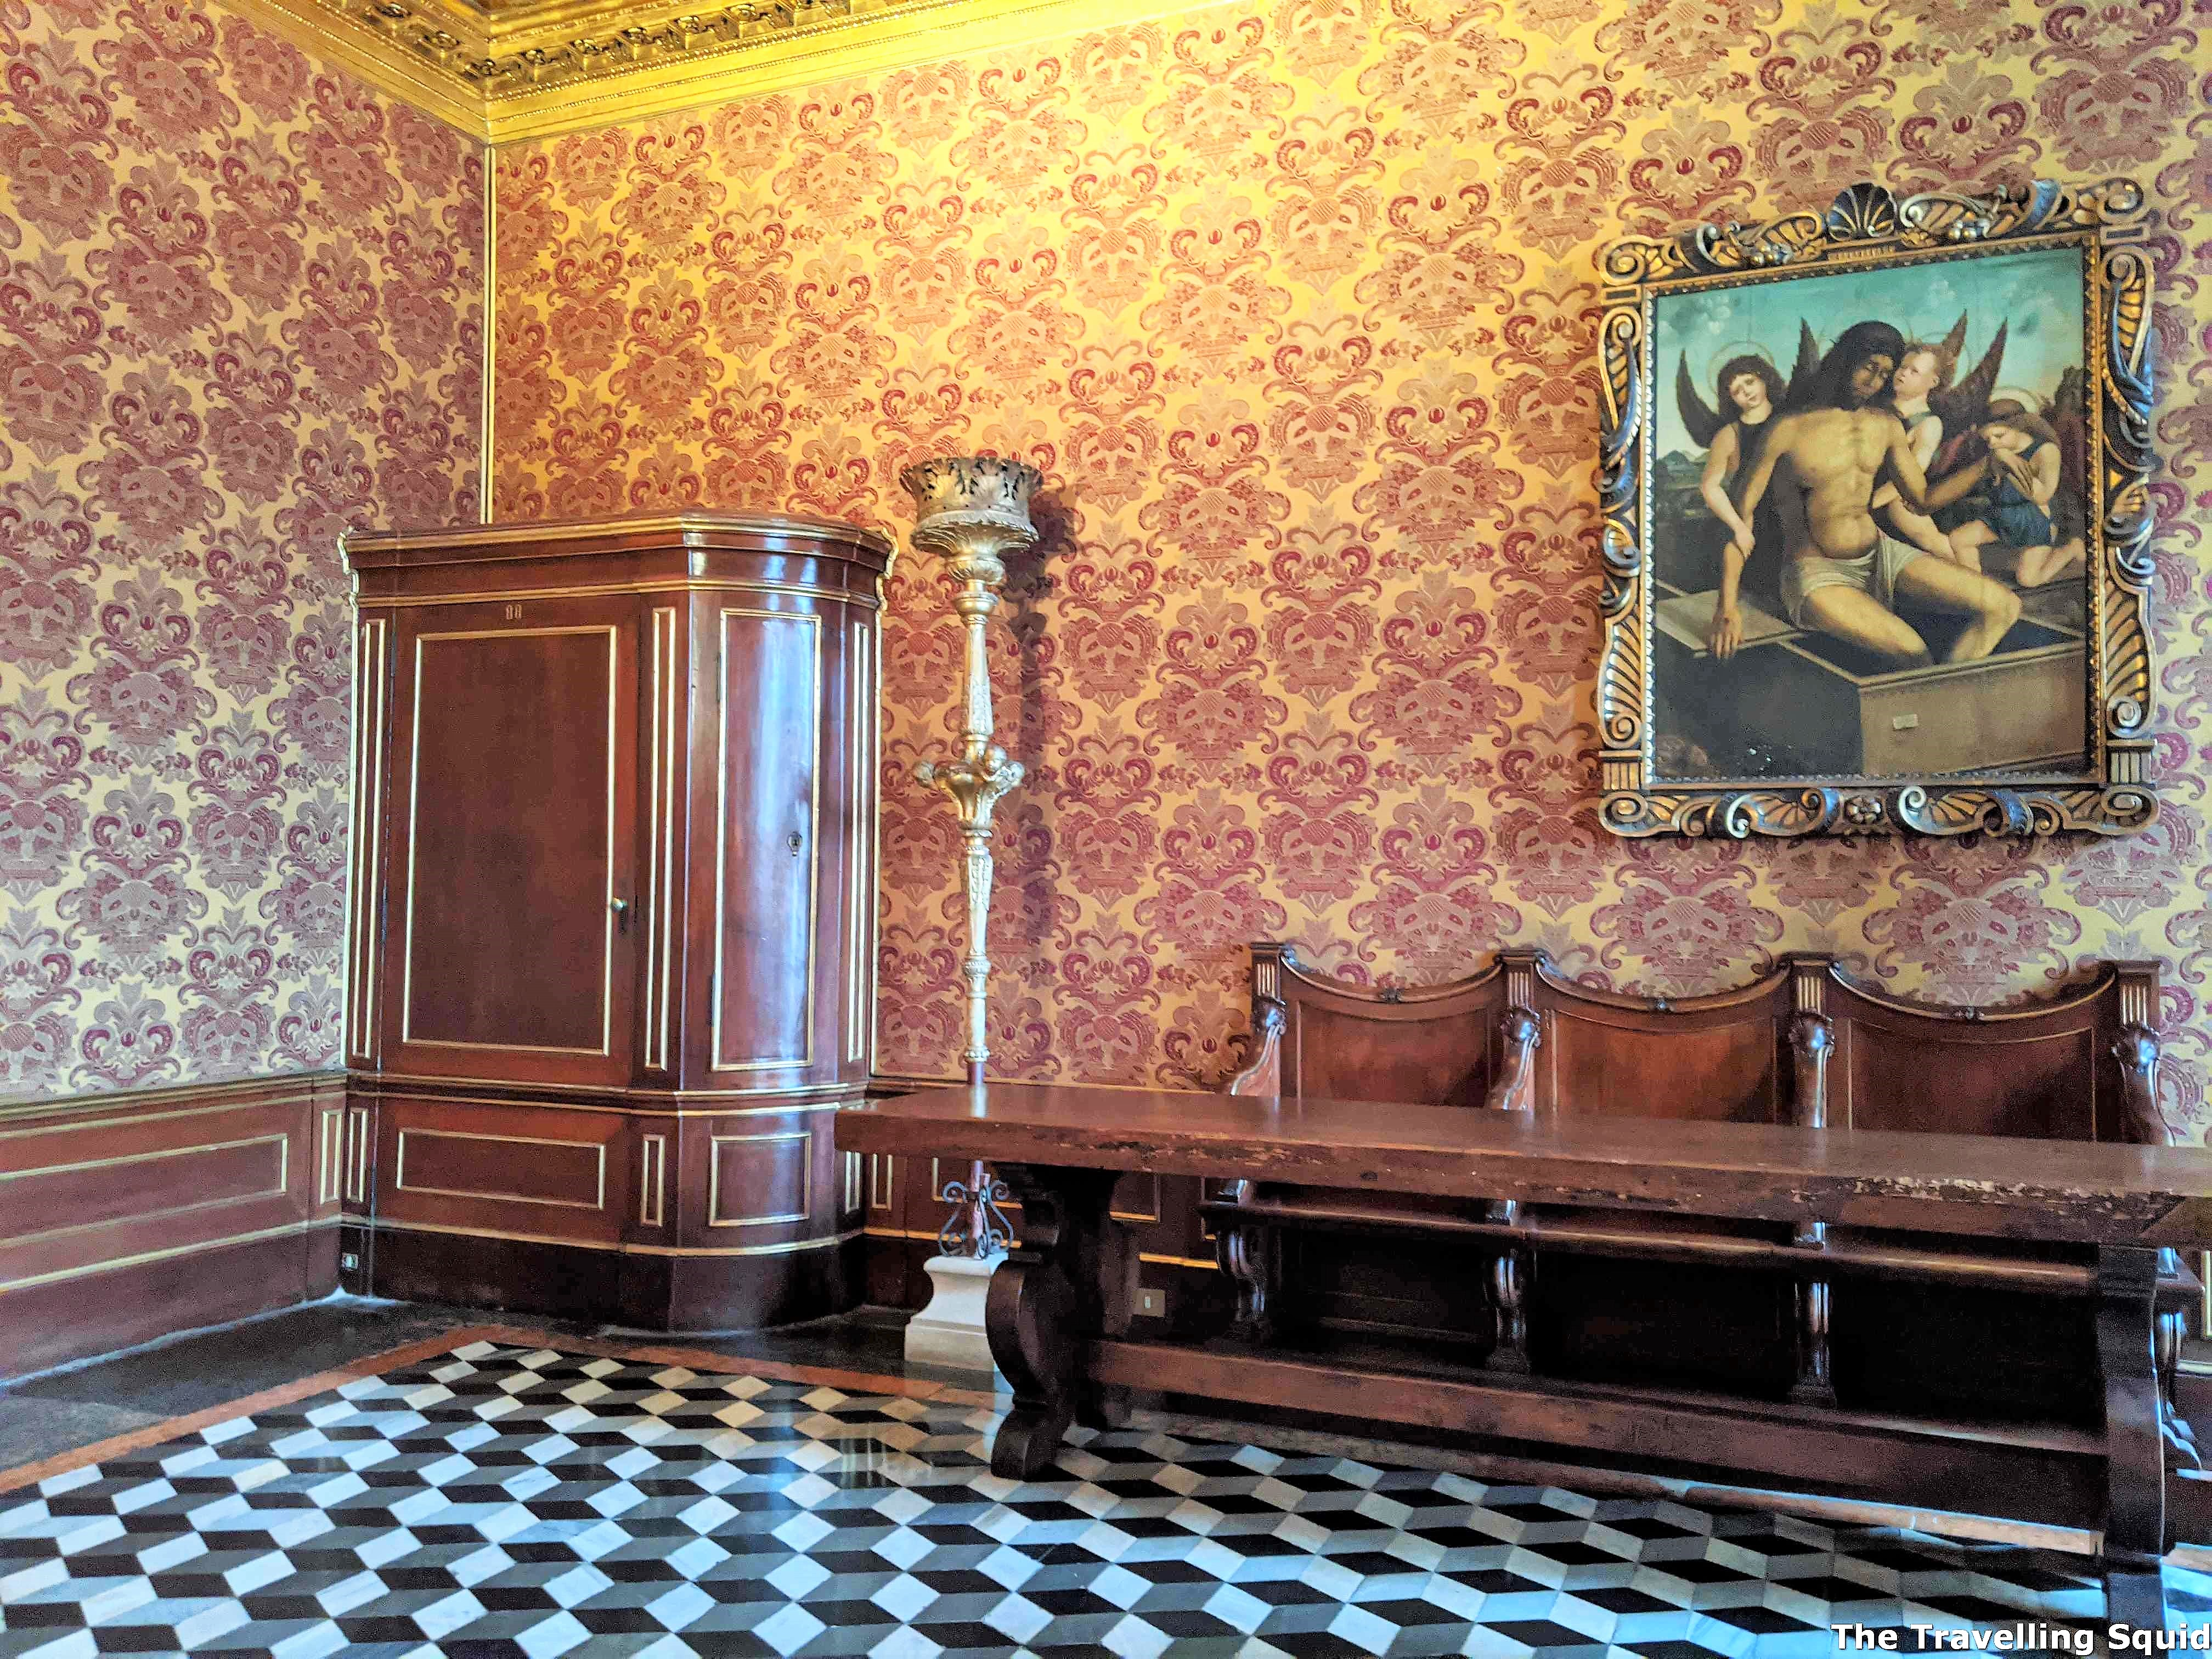 Secret Itineraries tour of the Doges Palace in Venice hidden door